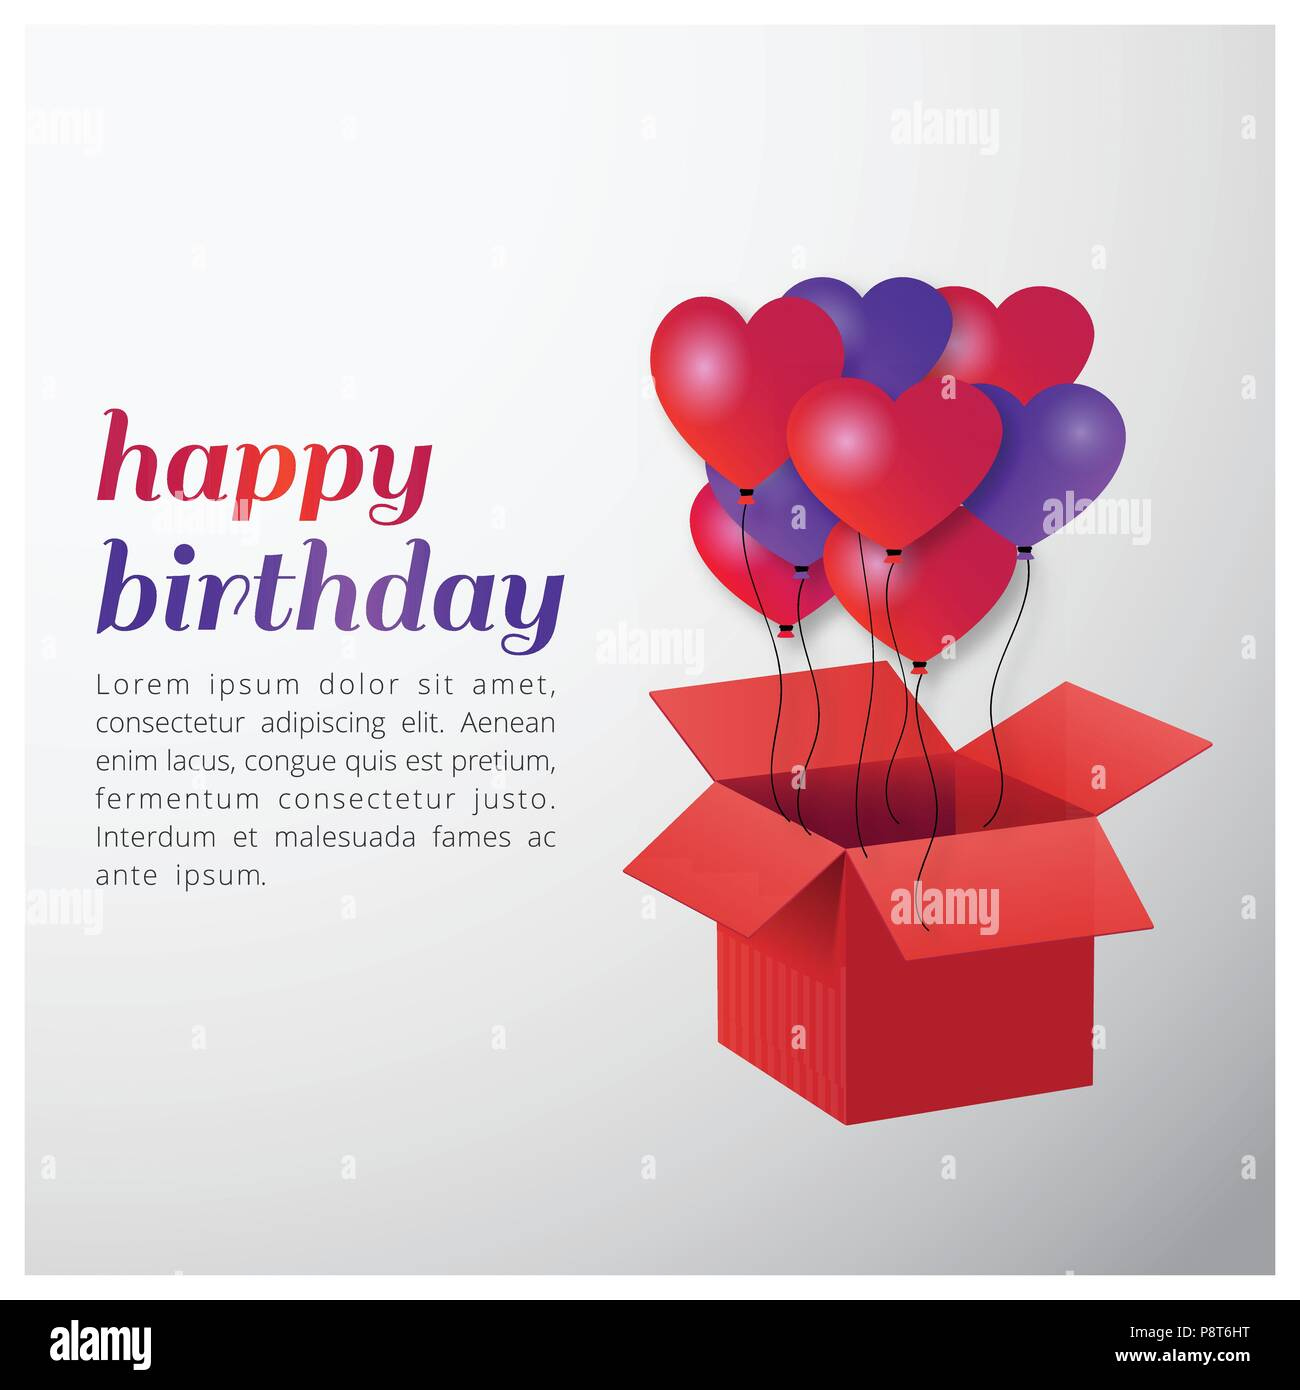 Happy birthday typography vector design for greeting cards and happy birthday typography vector design for greeting cards and poster with balloon and gift box design template for birthday celebration white and g m4hsunfo